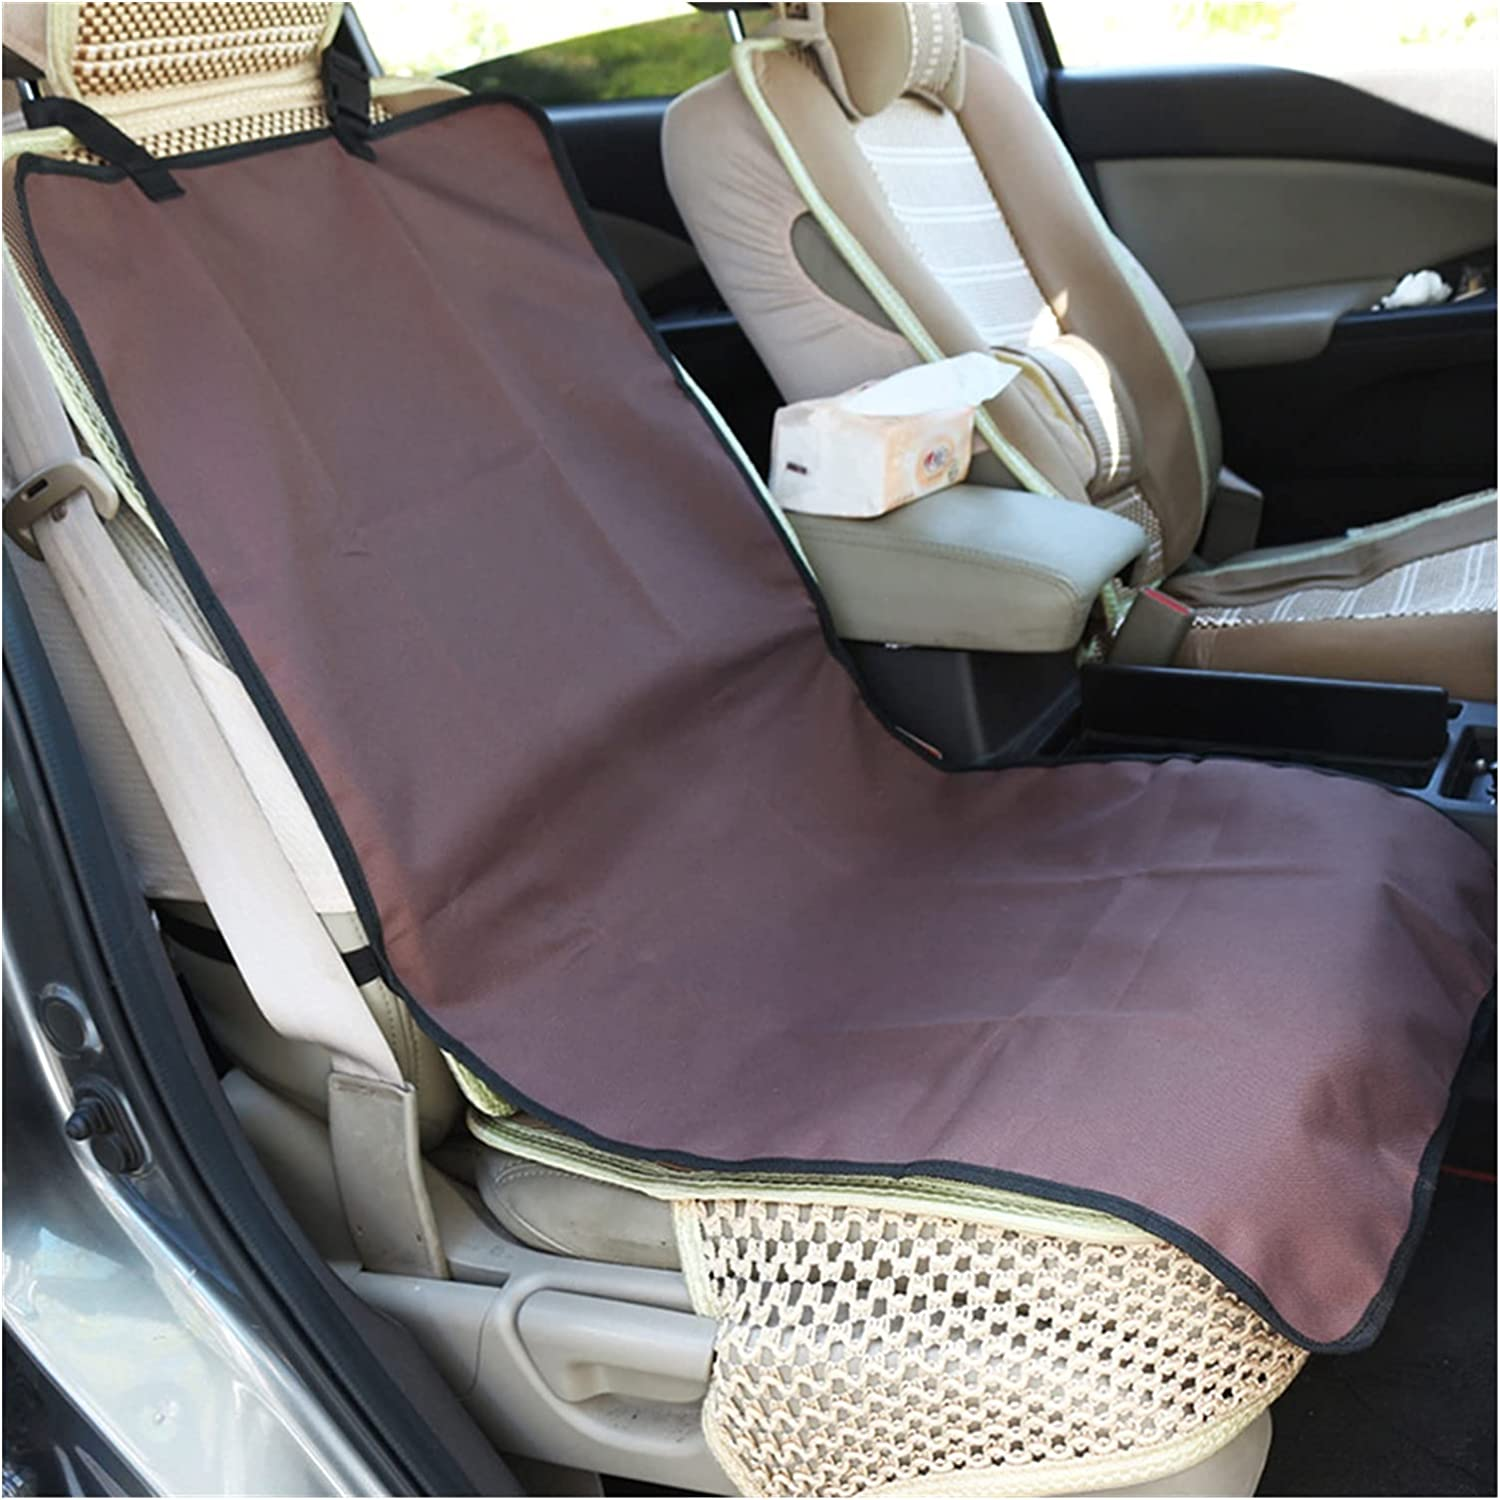 YENYWL Dog Car Seat Quality low-pricing inspection Cover 2 in Wa Front Pet 1